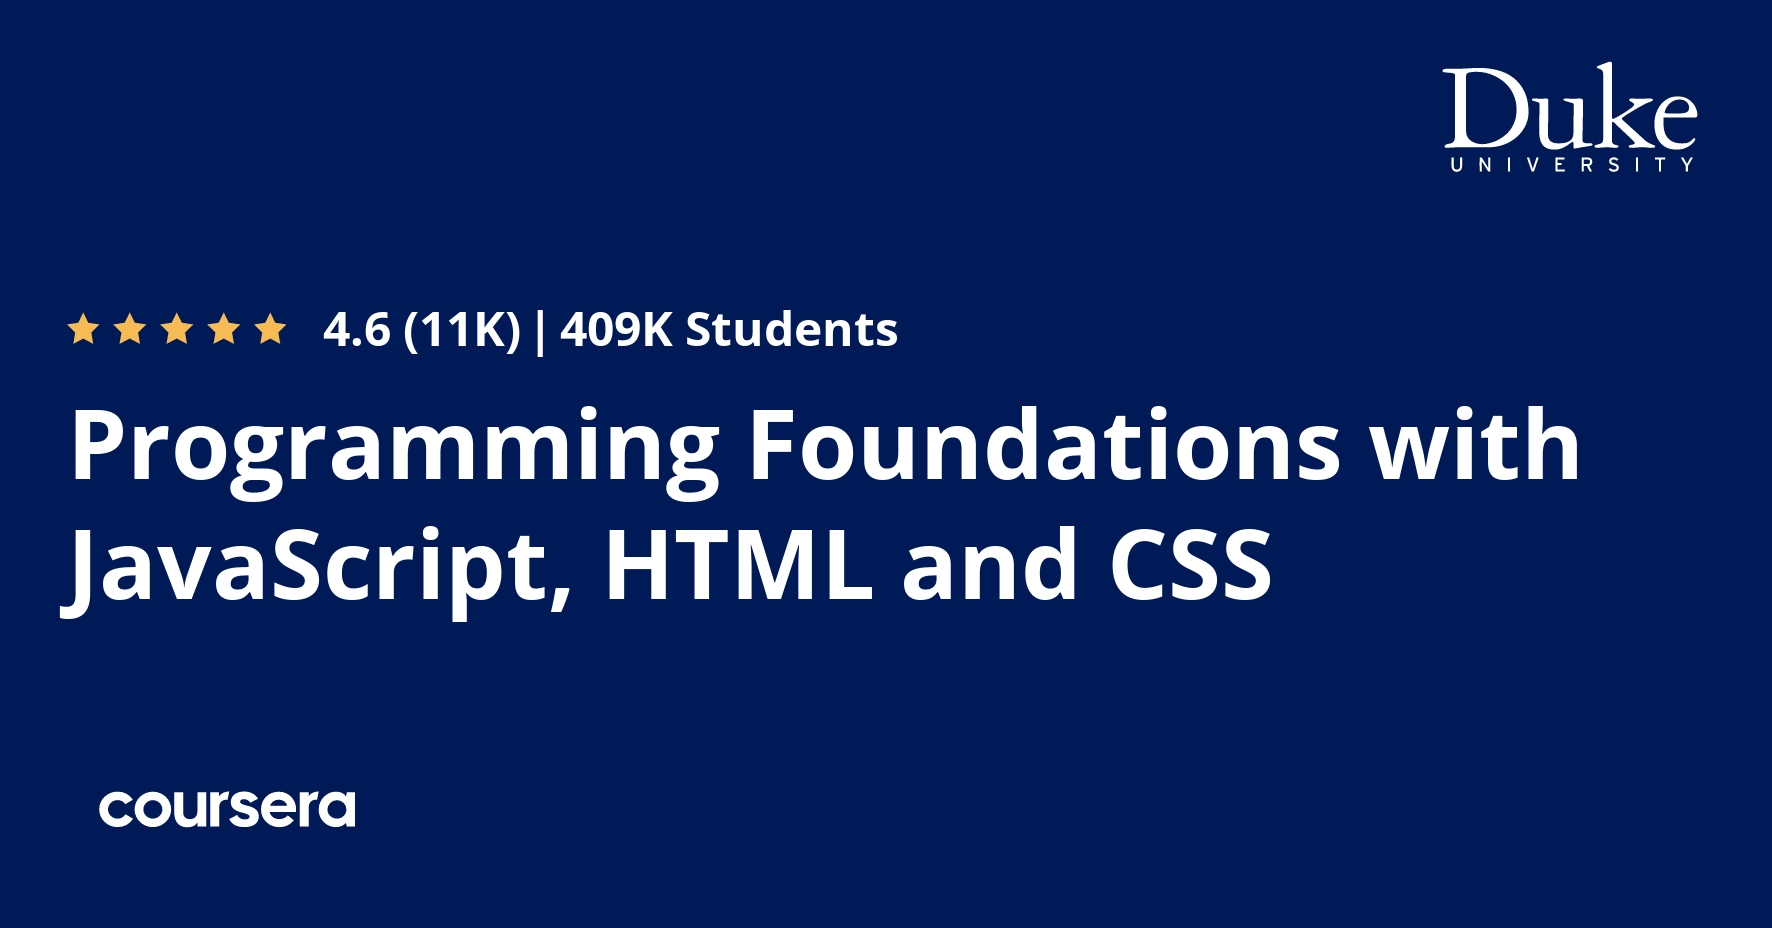 Programming Foundations with JavaScript, HTML and CSS